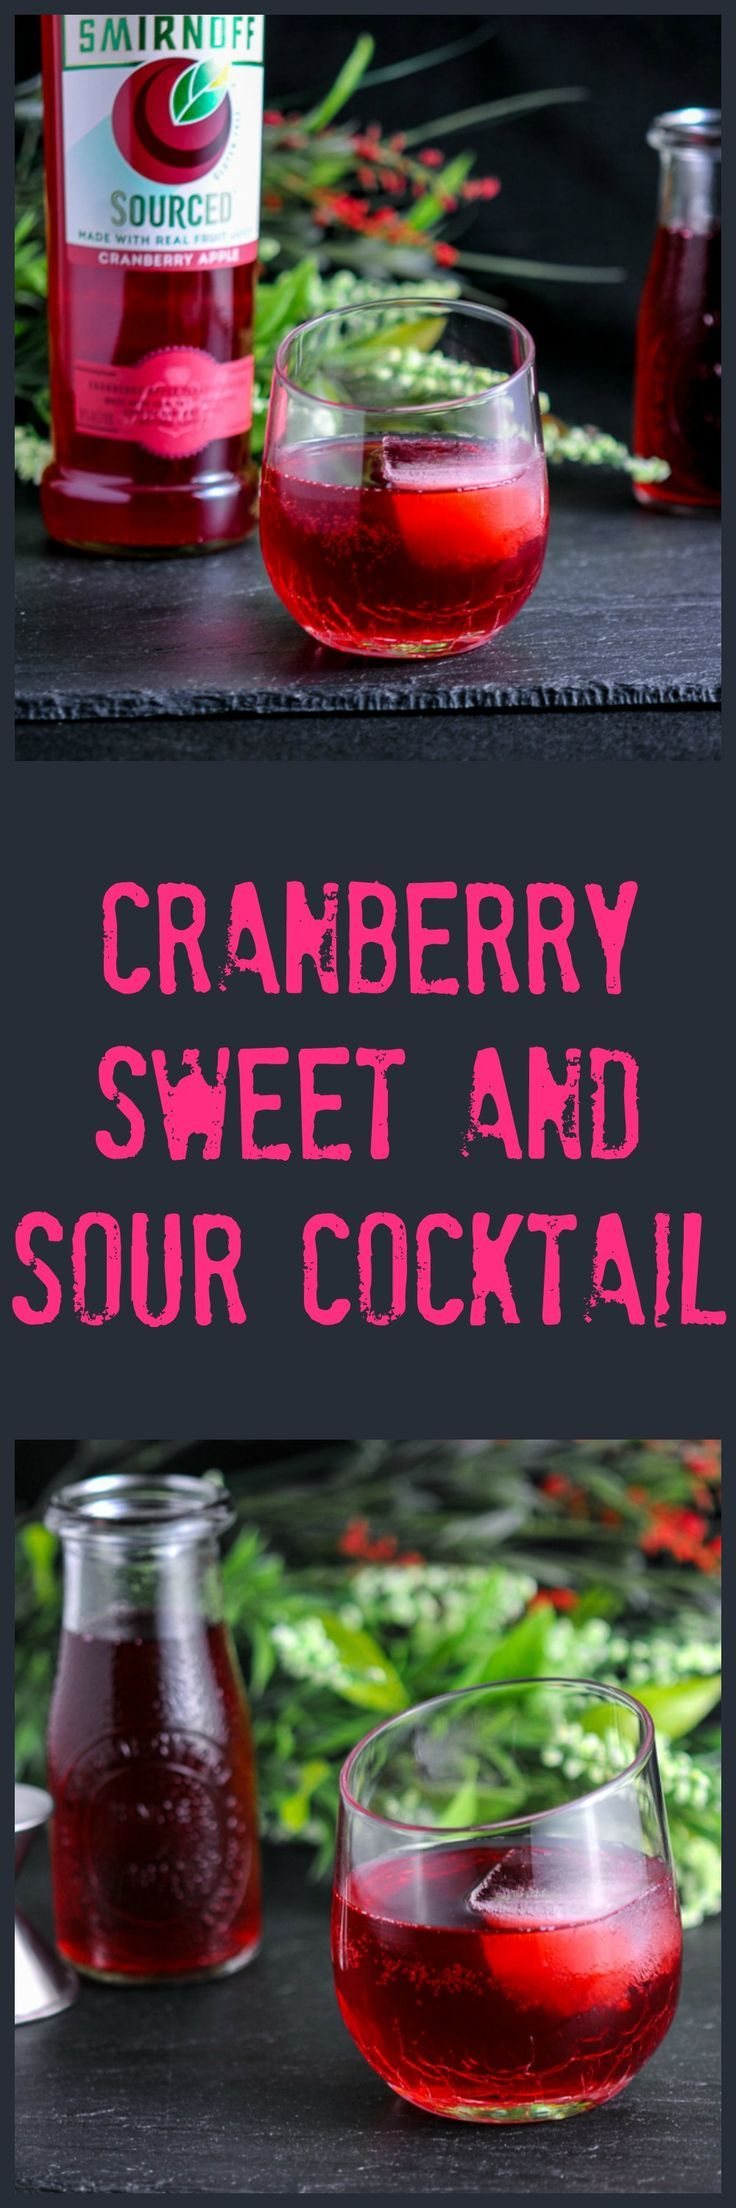 The 25 best apple vodka ideas on pinterest smirnoff for Cranberry bitters cocktail recipe